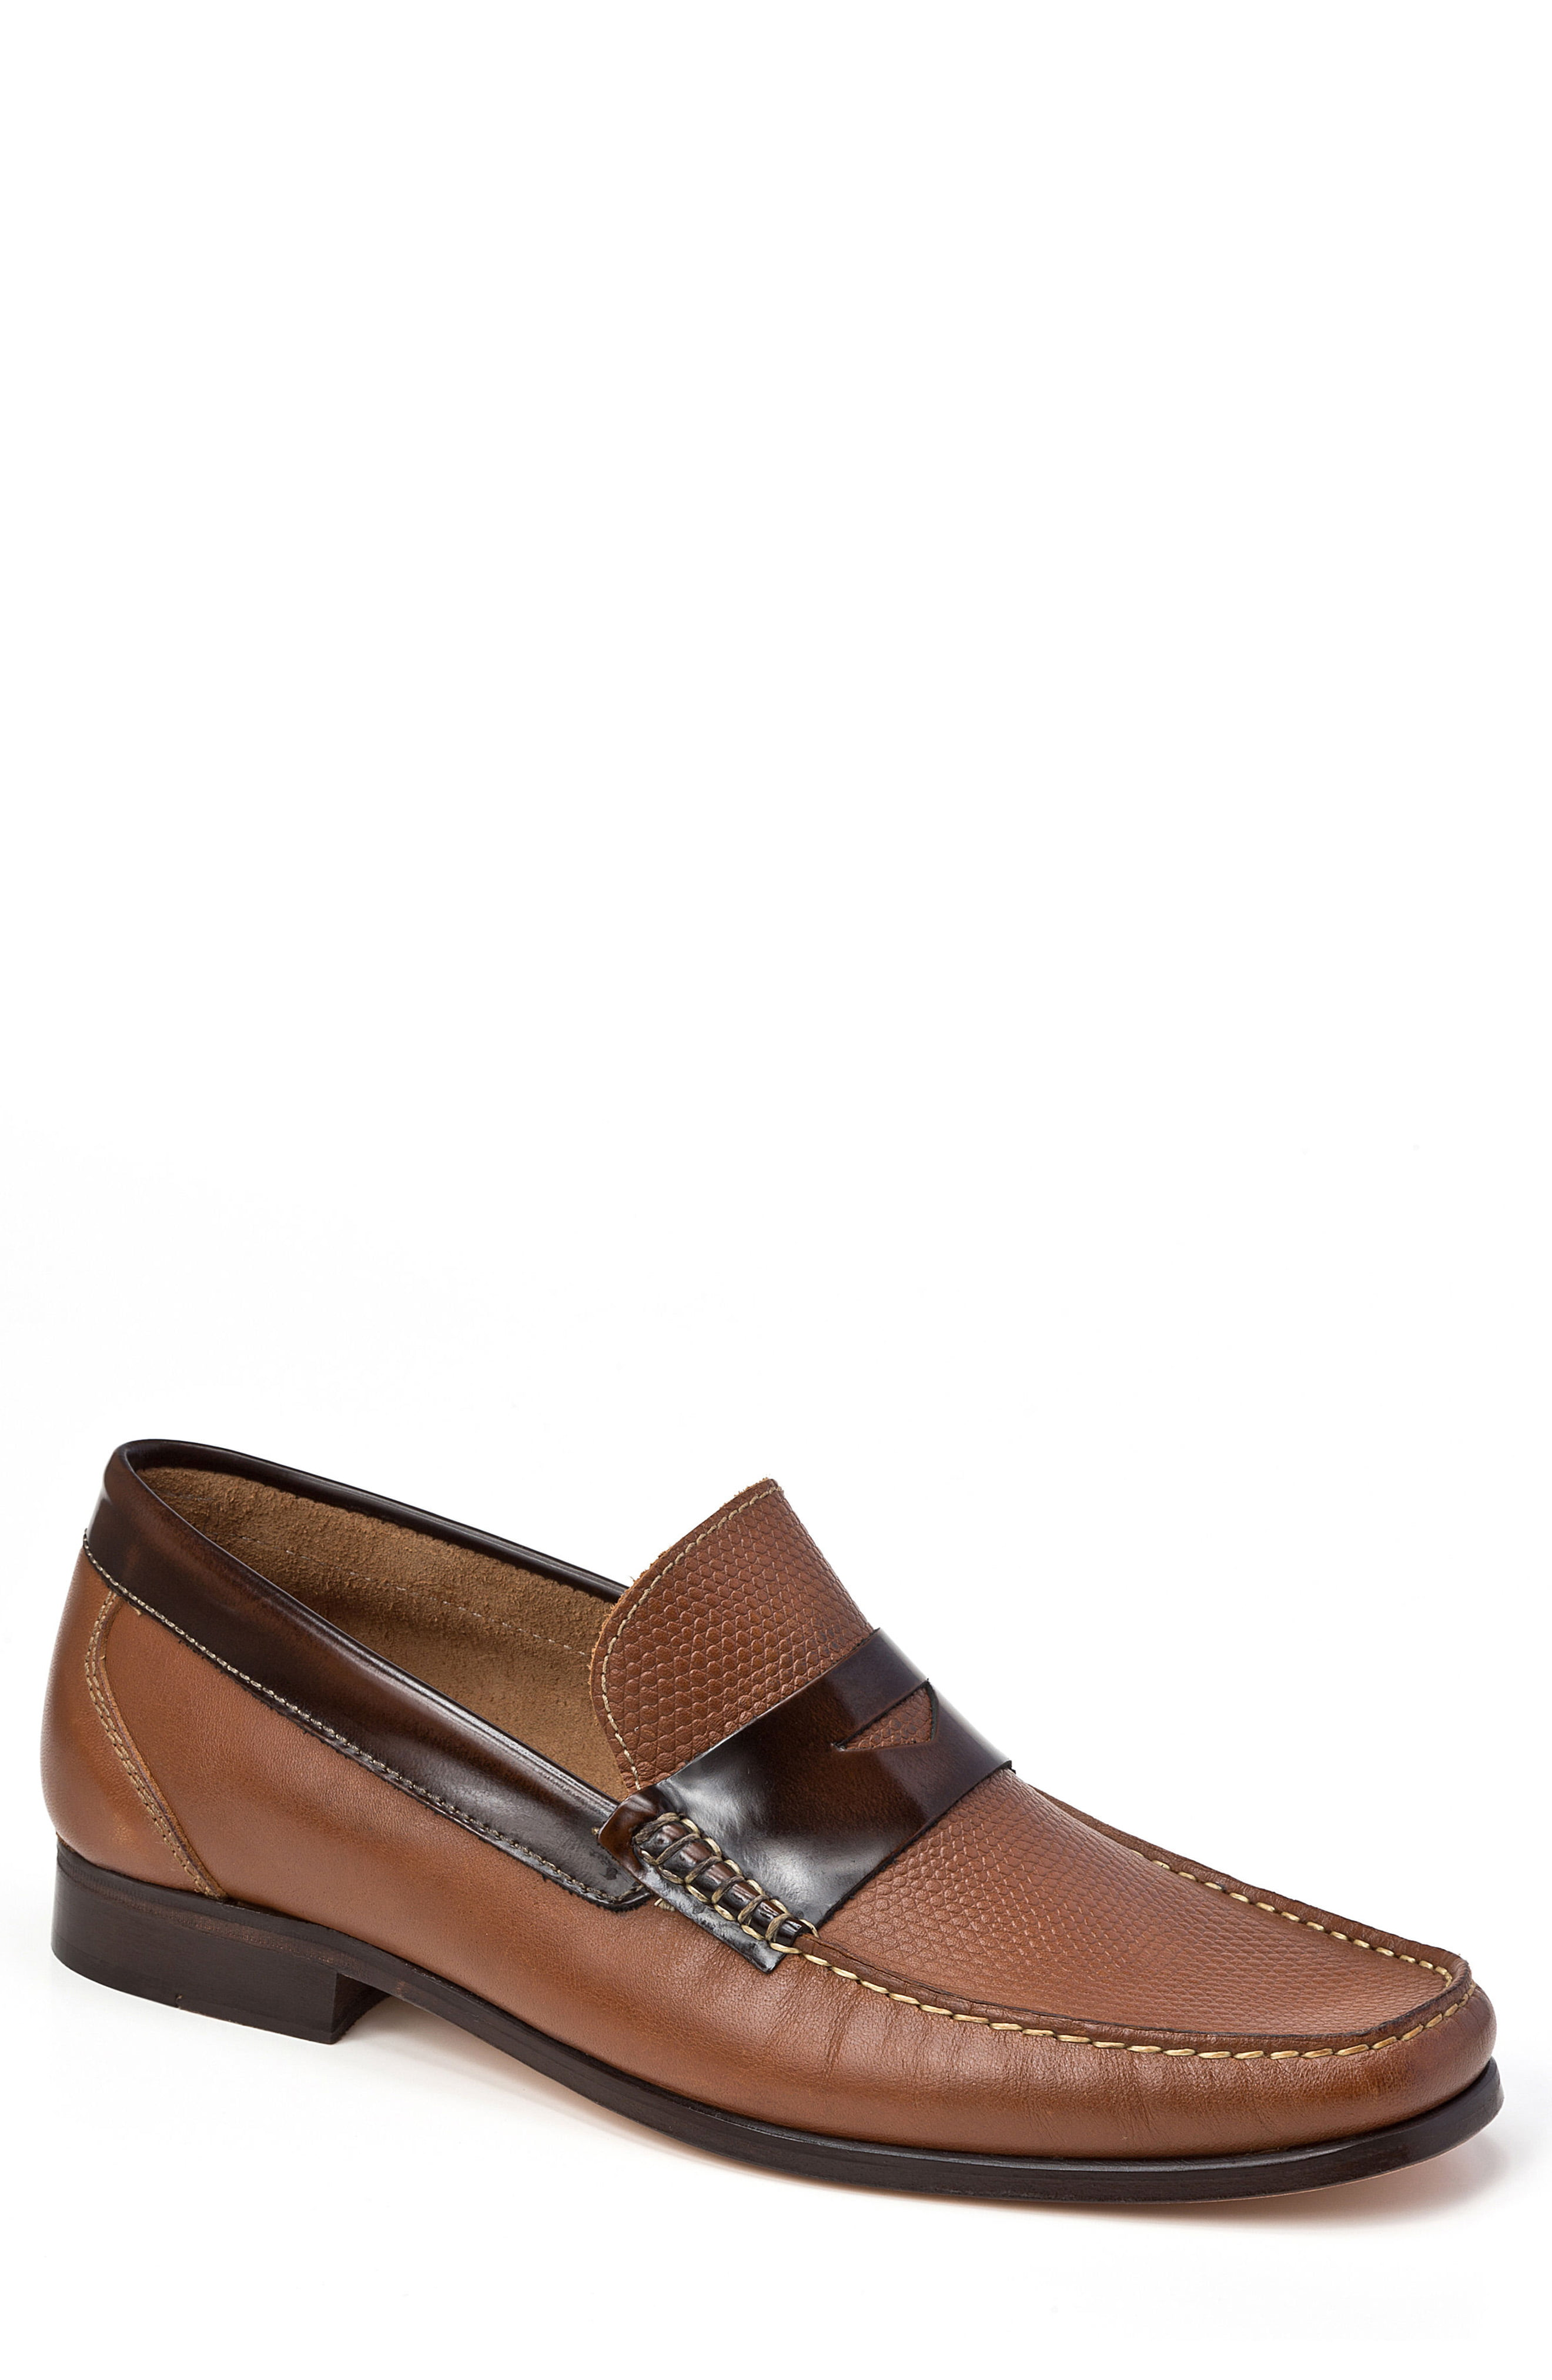 Men's Sandro Moscoloni Bilbao Pebble Embossed Penny Loafer, Size 9 D - Brown